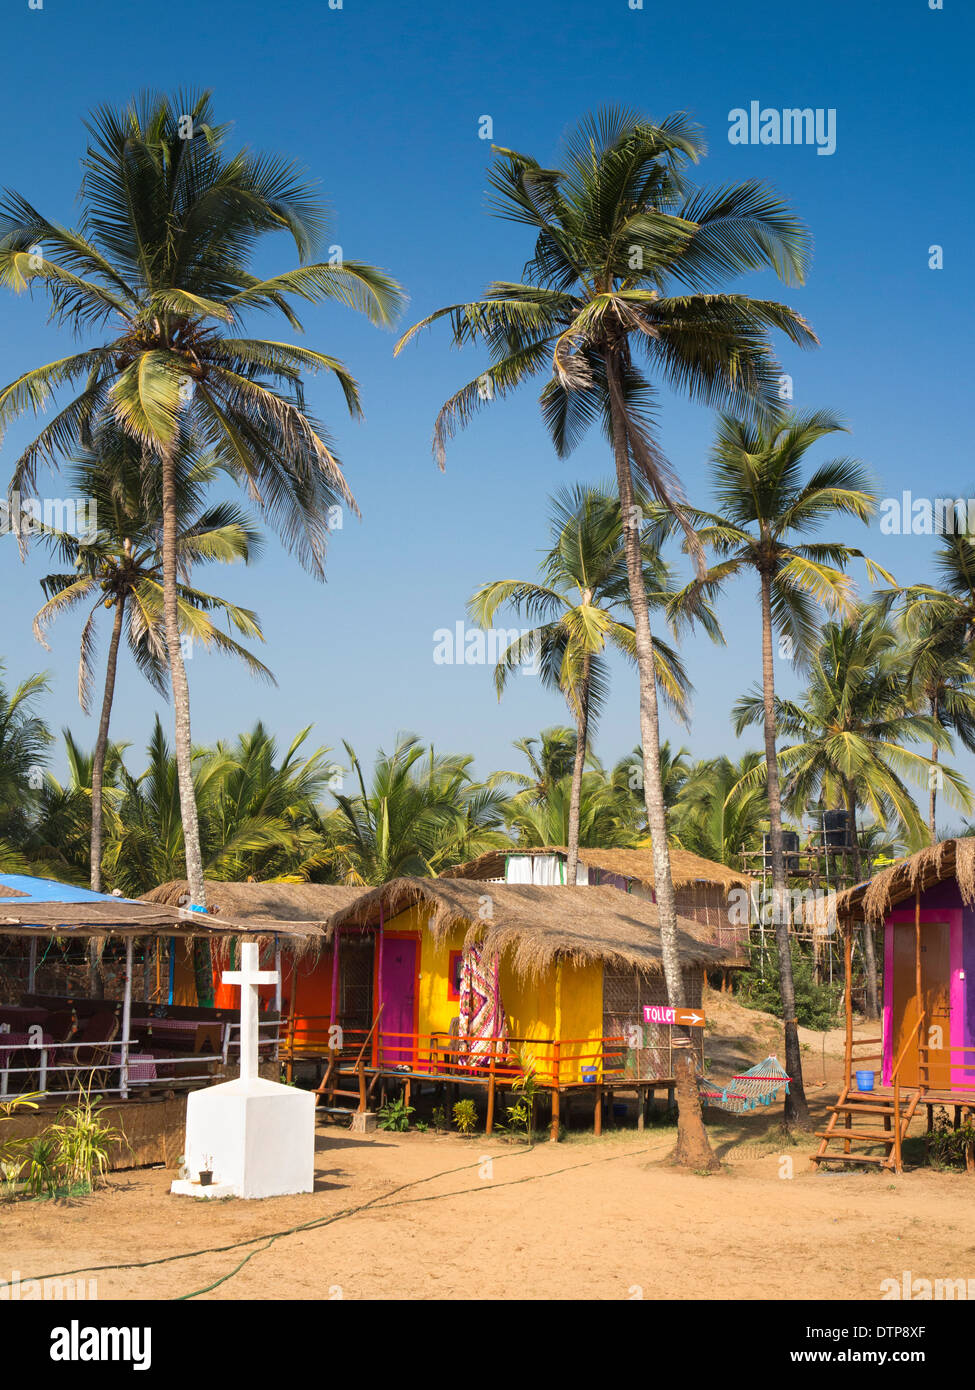 Coconut Huts Stock Photos Amp Coconut Huts Stock Images Alamy